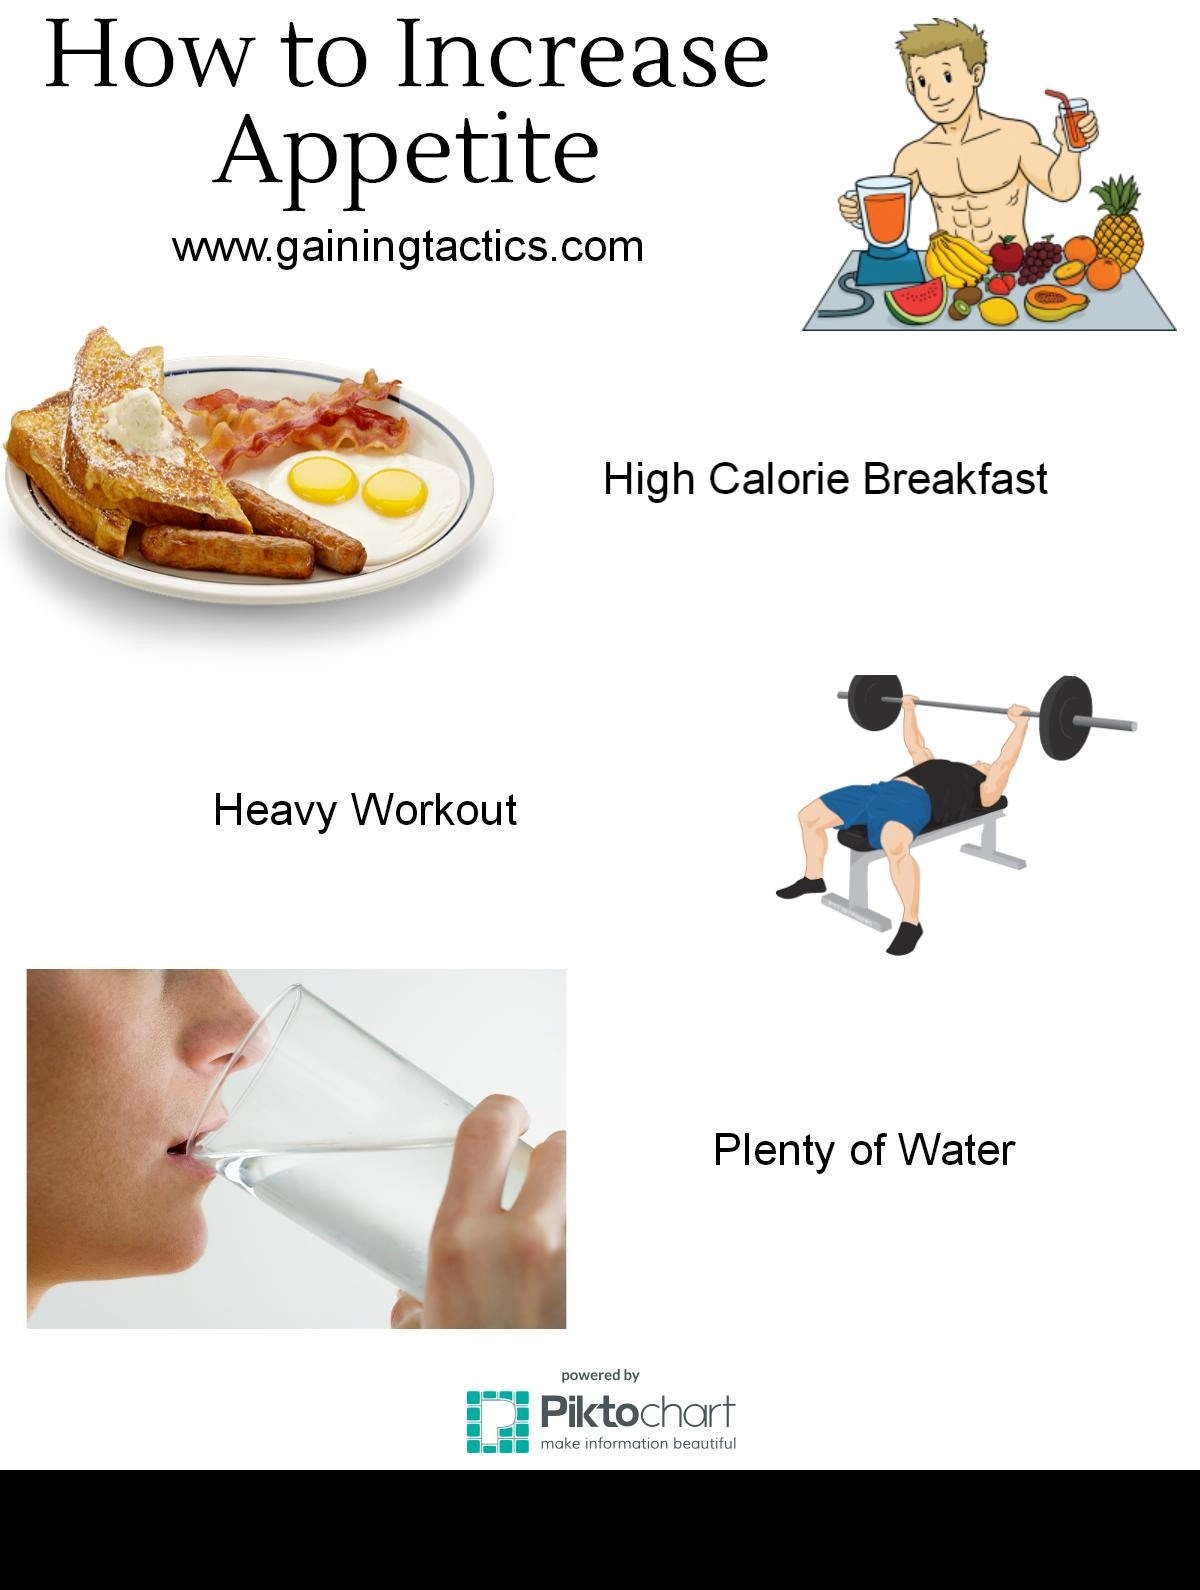 How To Increase Appetite And Gain Weight  Gaining Tactics